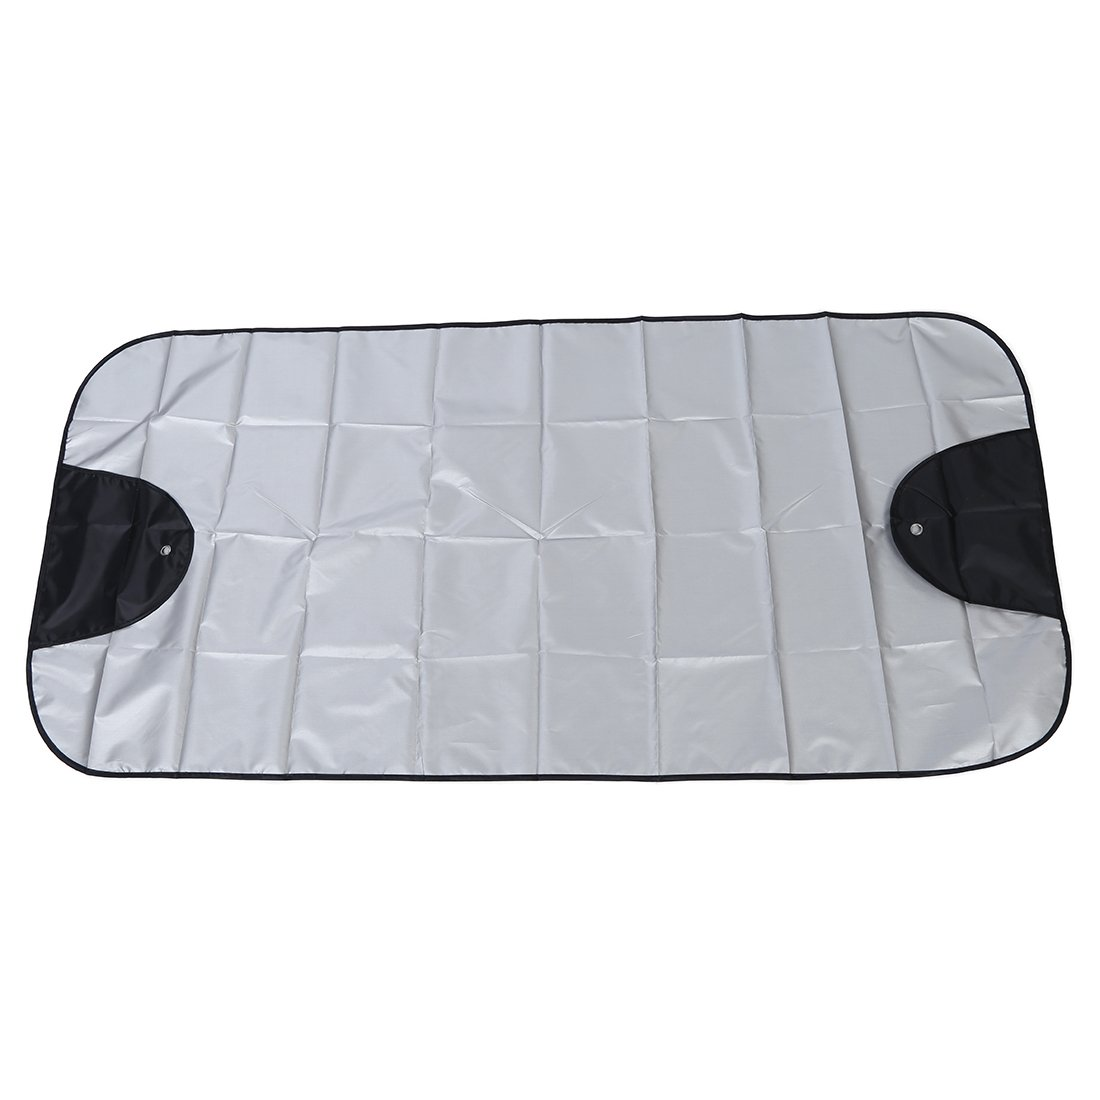 Car Windscreen Cover - SODIAL(R)Car Windscreen Cover Winter Anti Snow Frost Ice Shield Dust Protector Sun Shade Silver&Black SODIAL (R) 068417